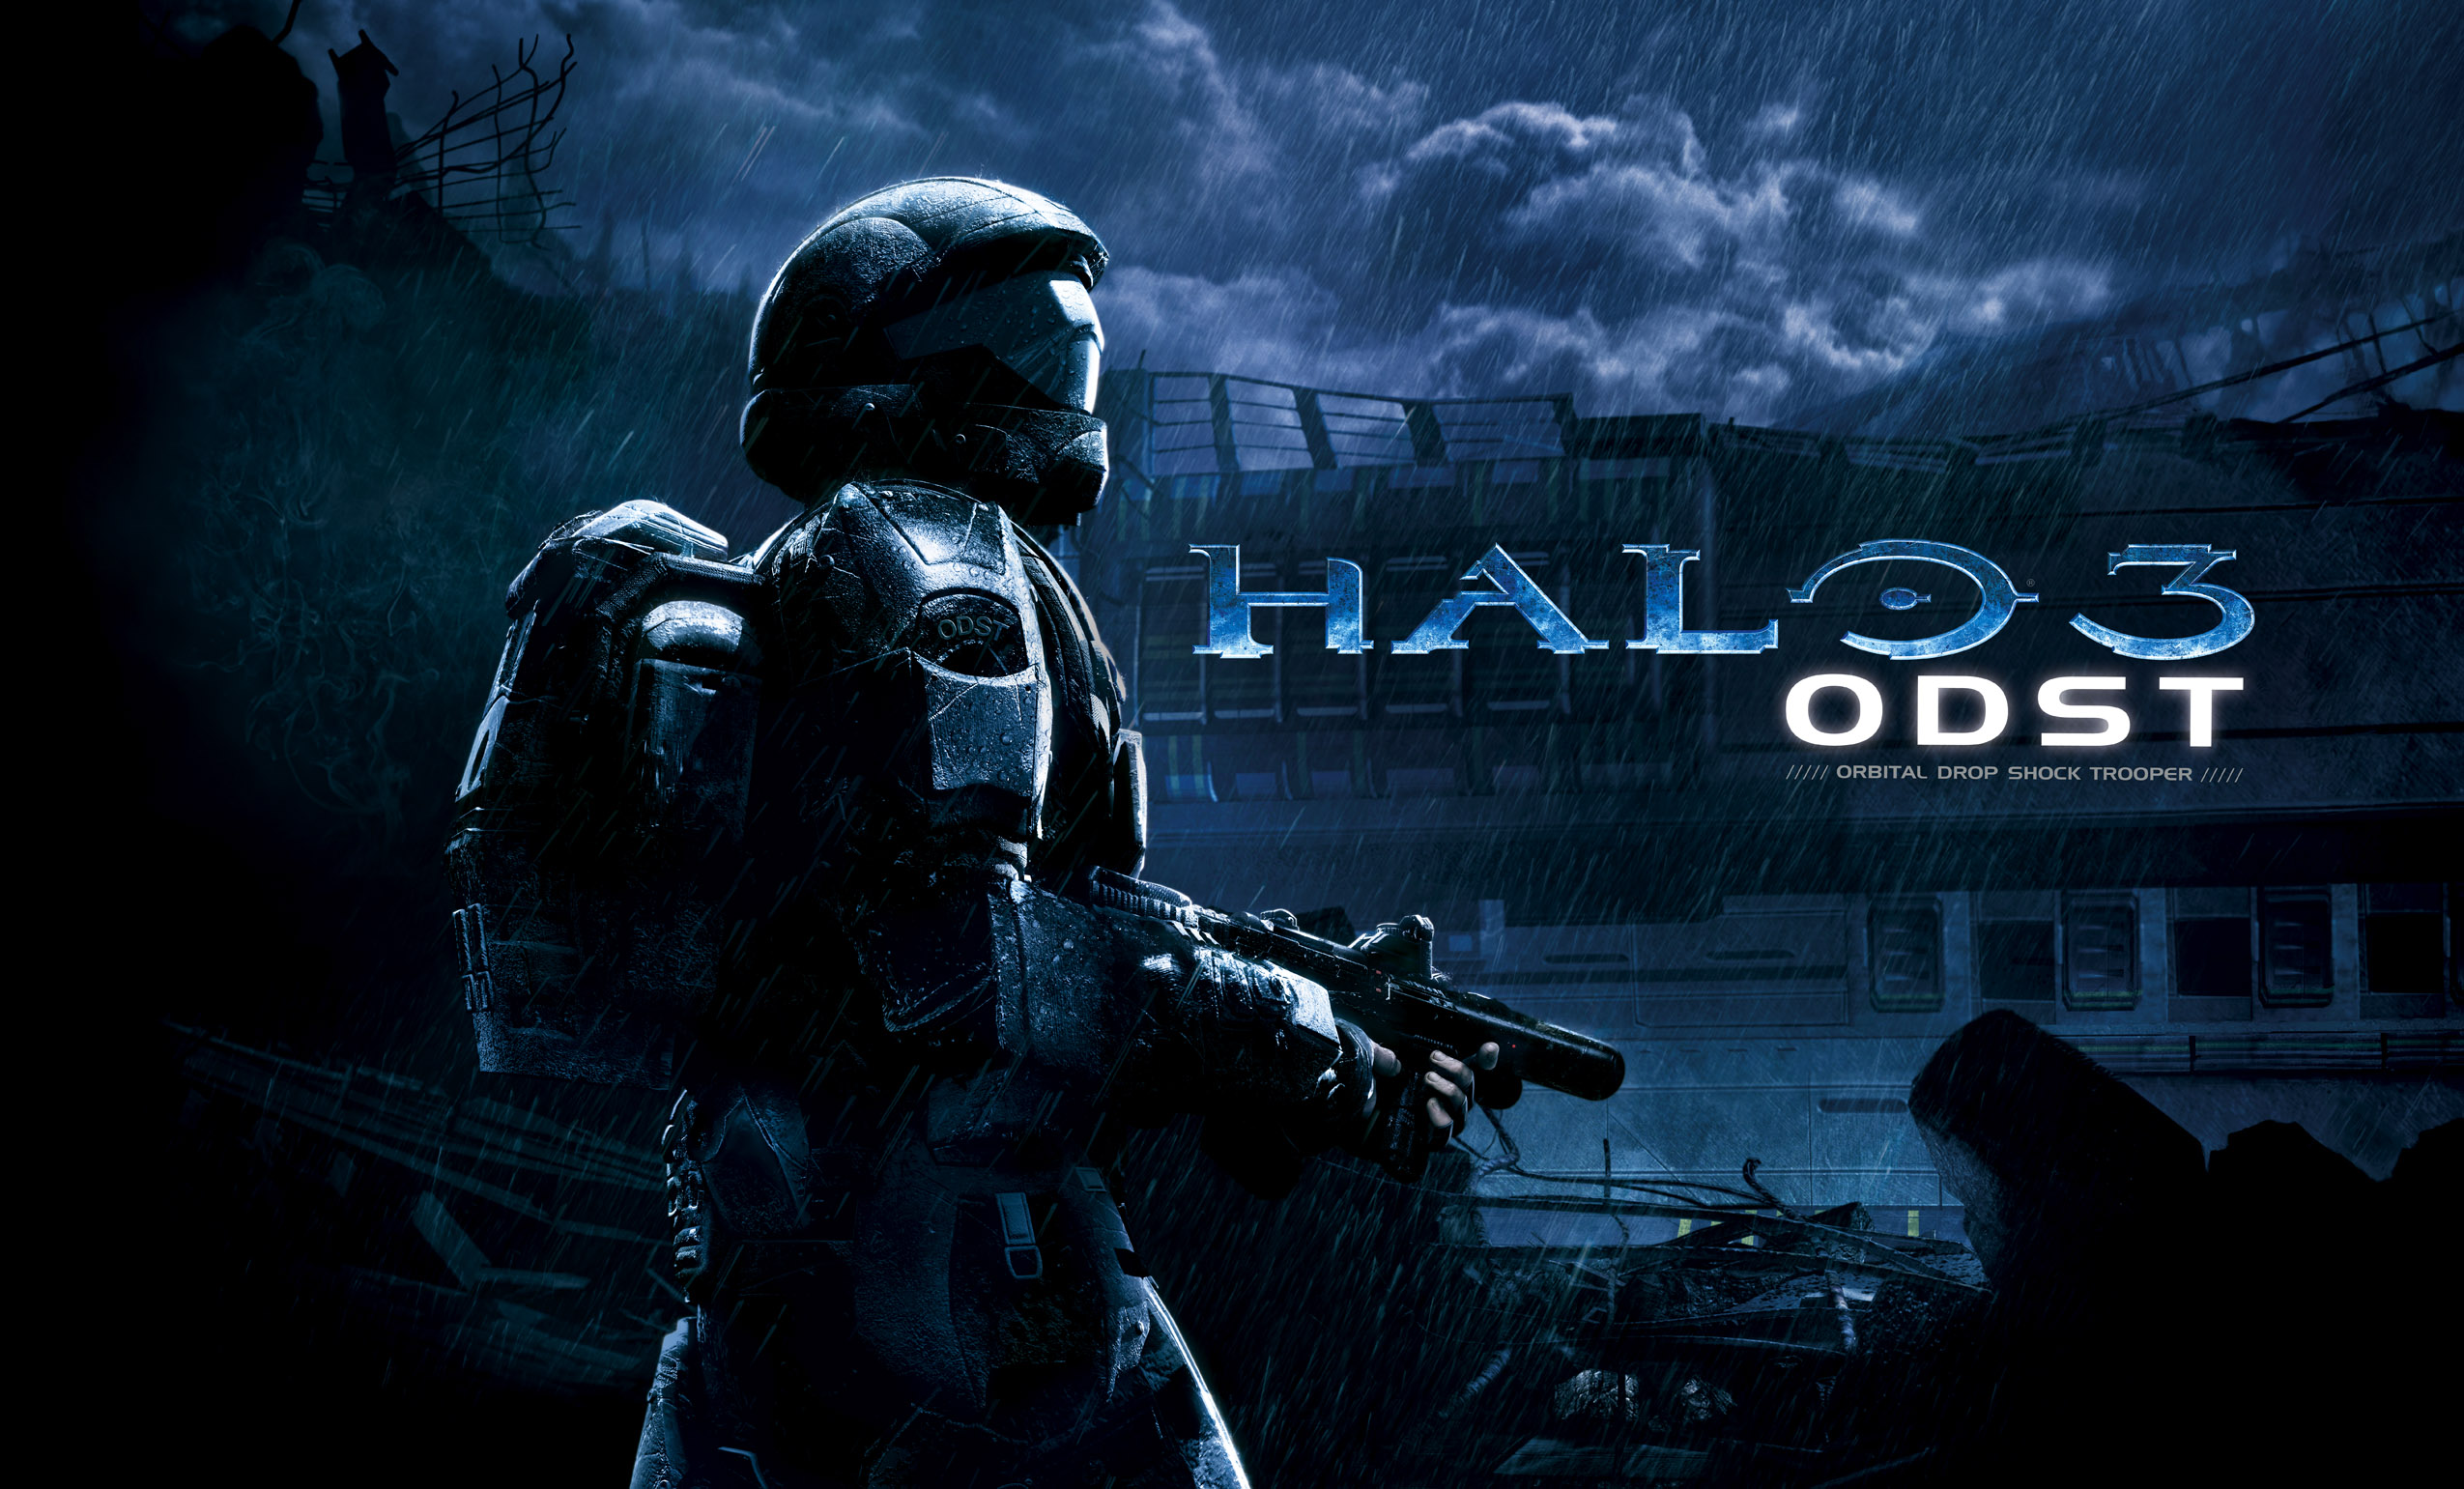 Fondos de pantalla Halo 3 ODST Orbital Drop Shock Troopers